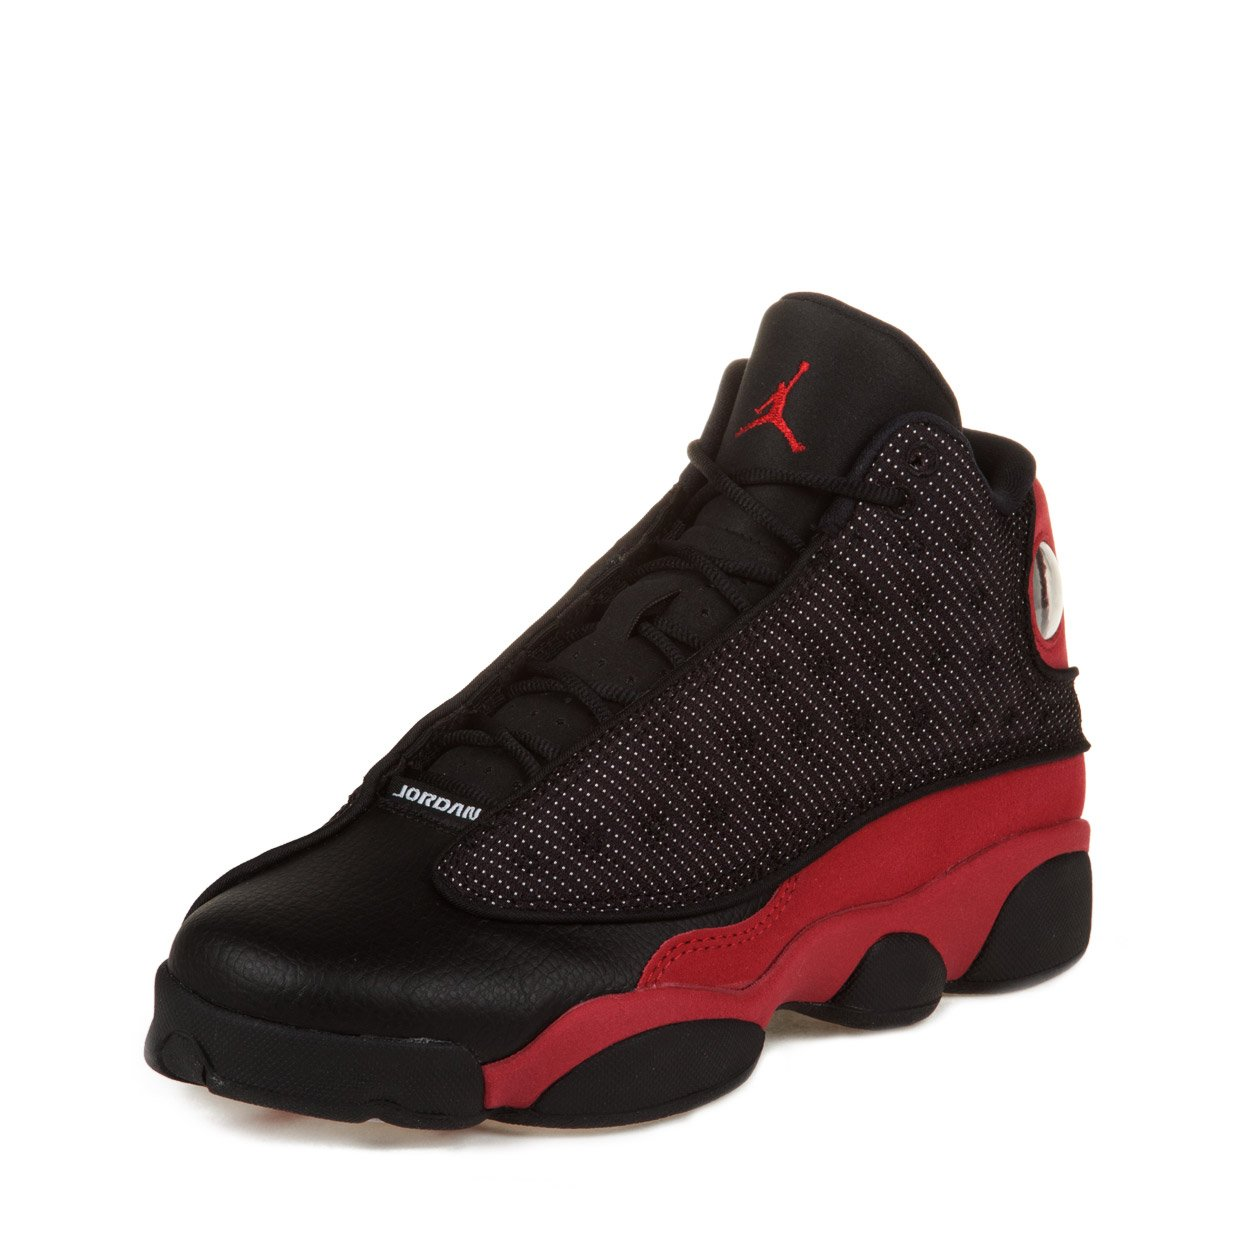 Nike Boys Air Jordan 13 Retro (GS) ''Bred'' Black/Varsity Red-White Leather Basketball Shoes Size 6.5Y